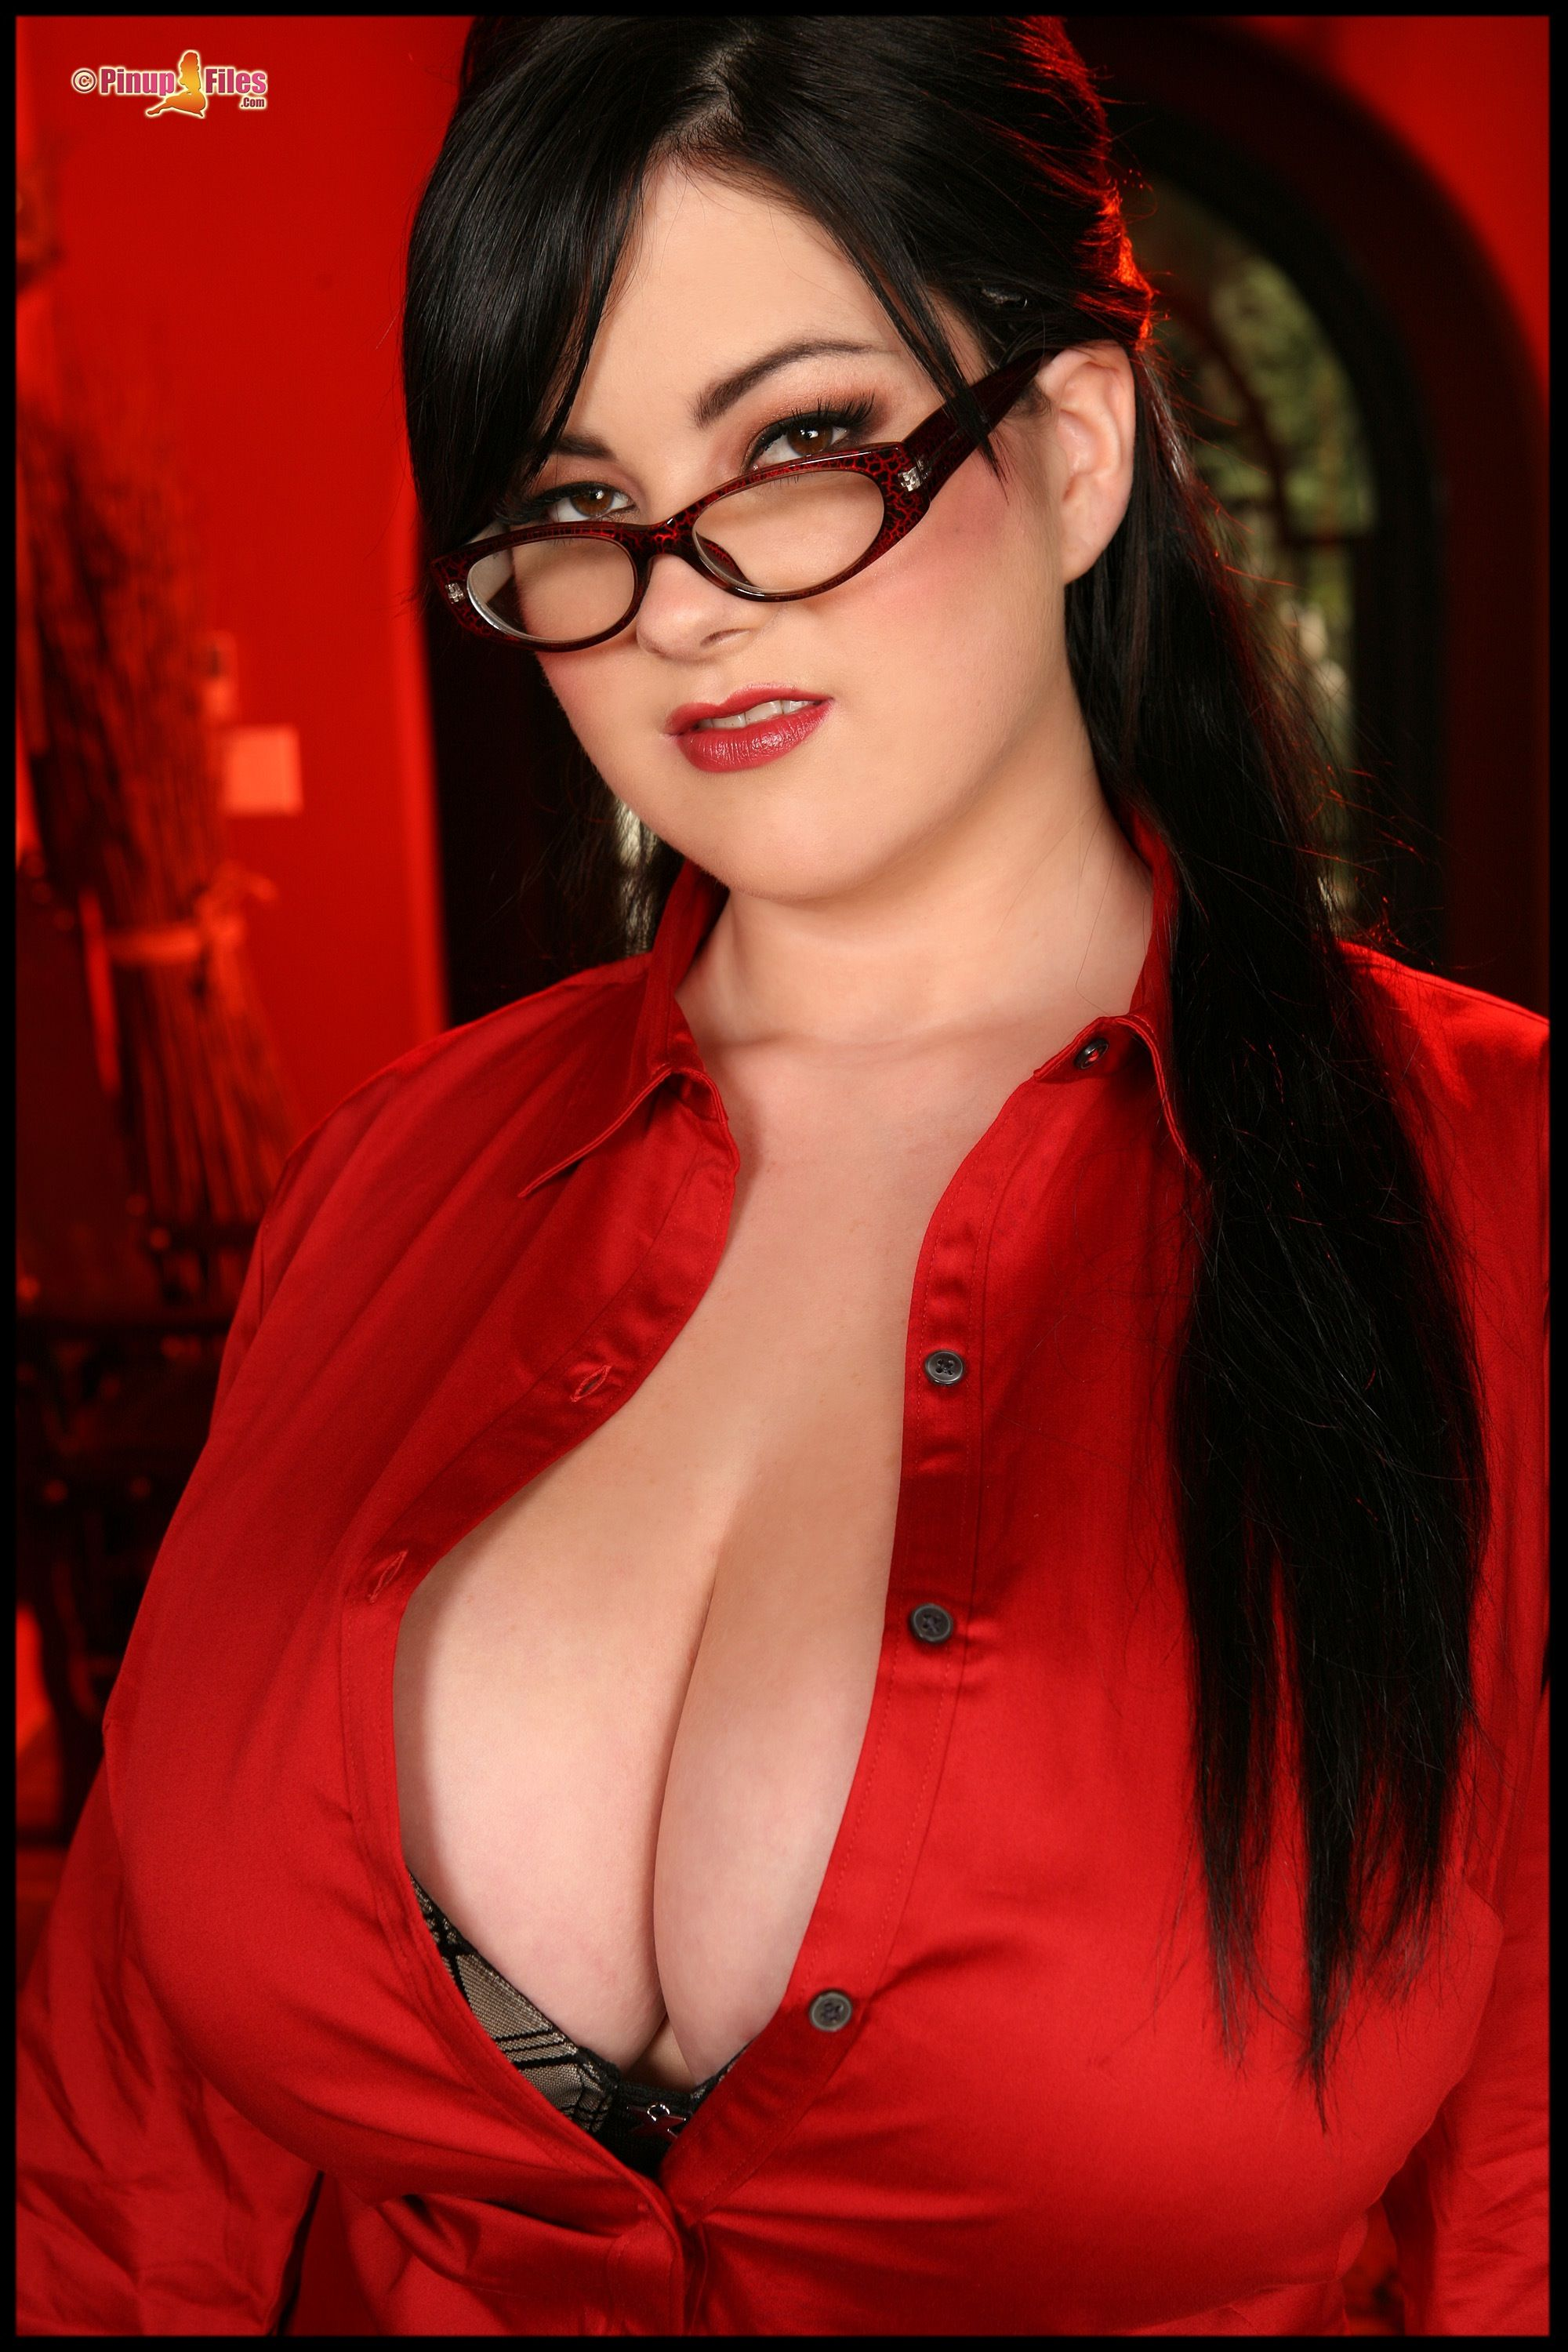 busty 1 | glasses bbw | pinterest | boobs, satin and girls